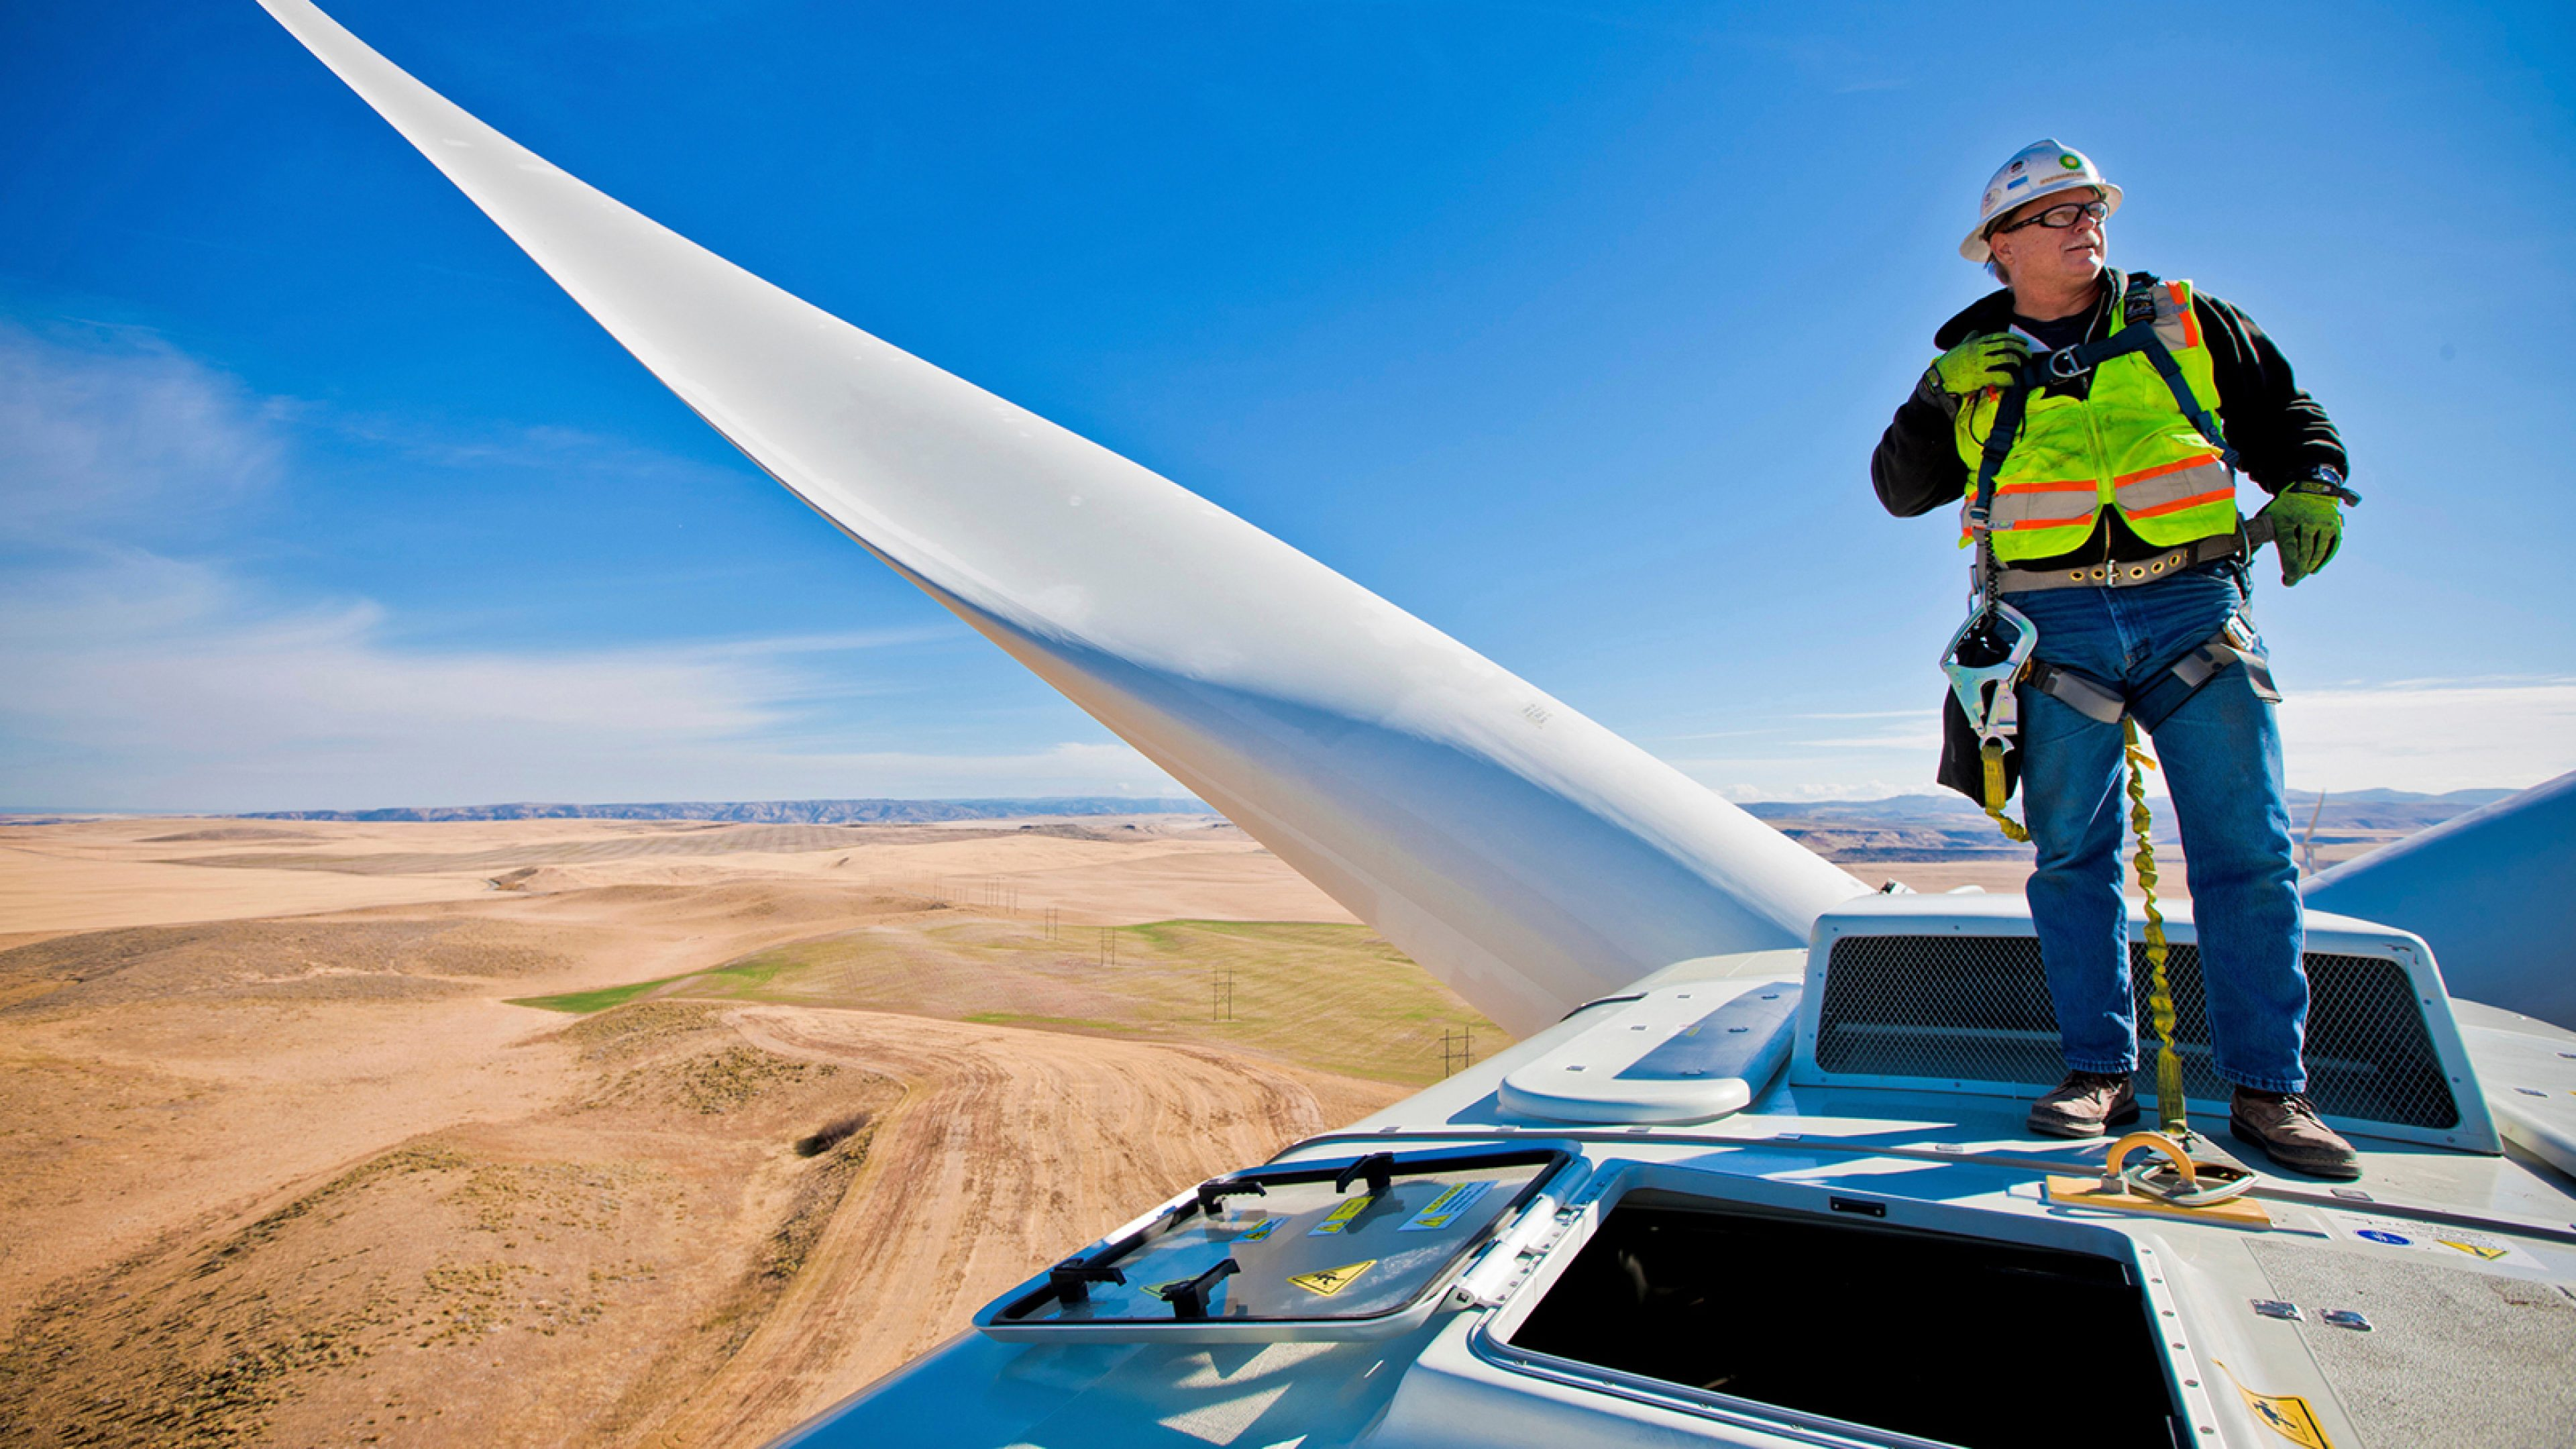 Engineer stood on a turbine